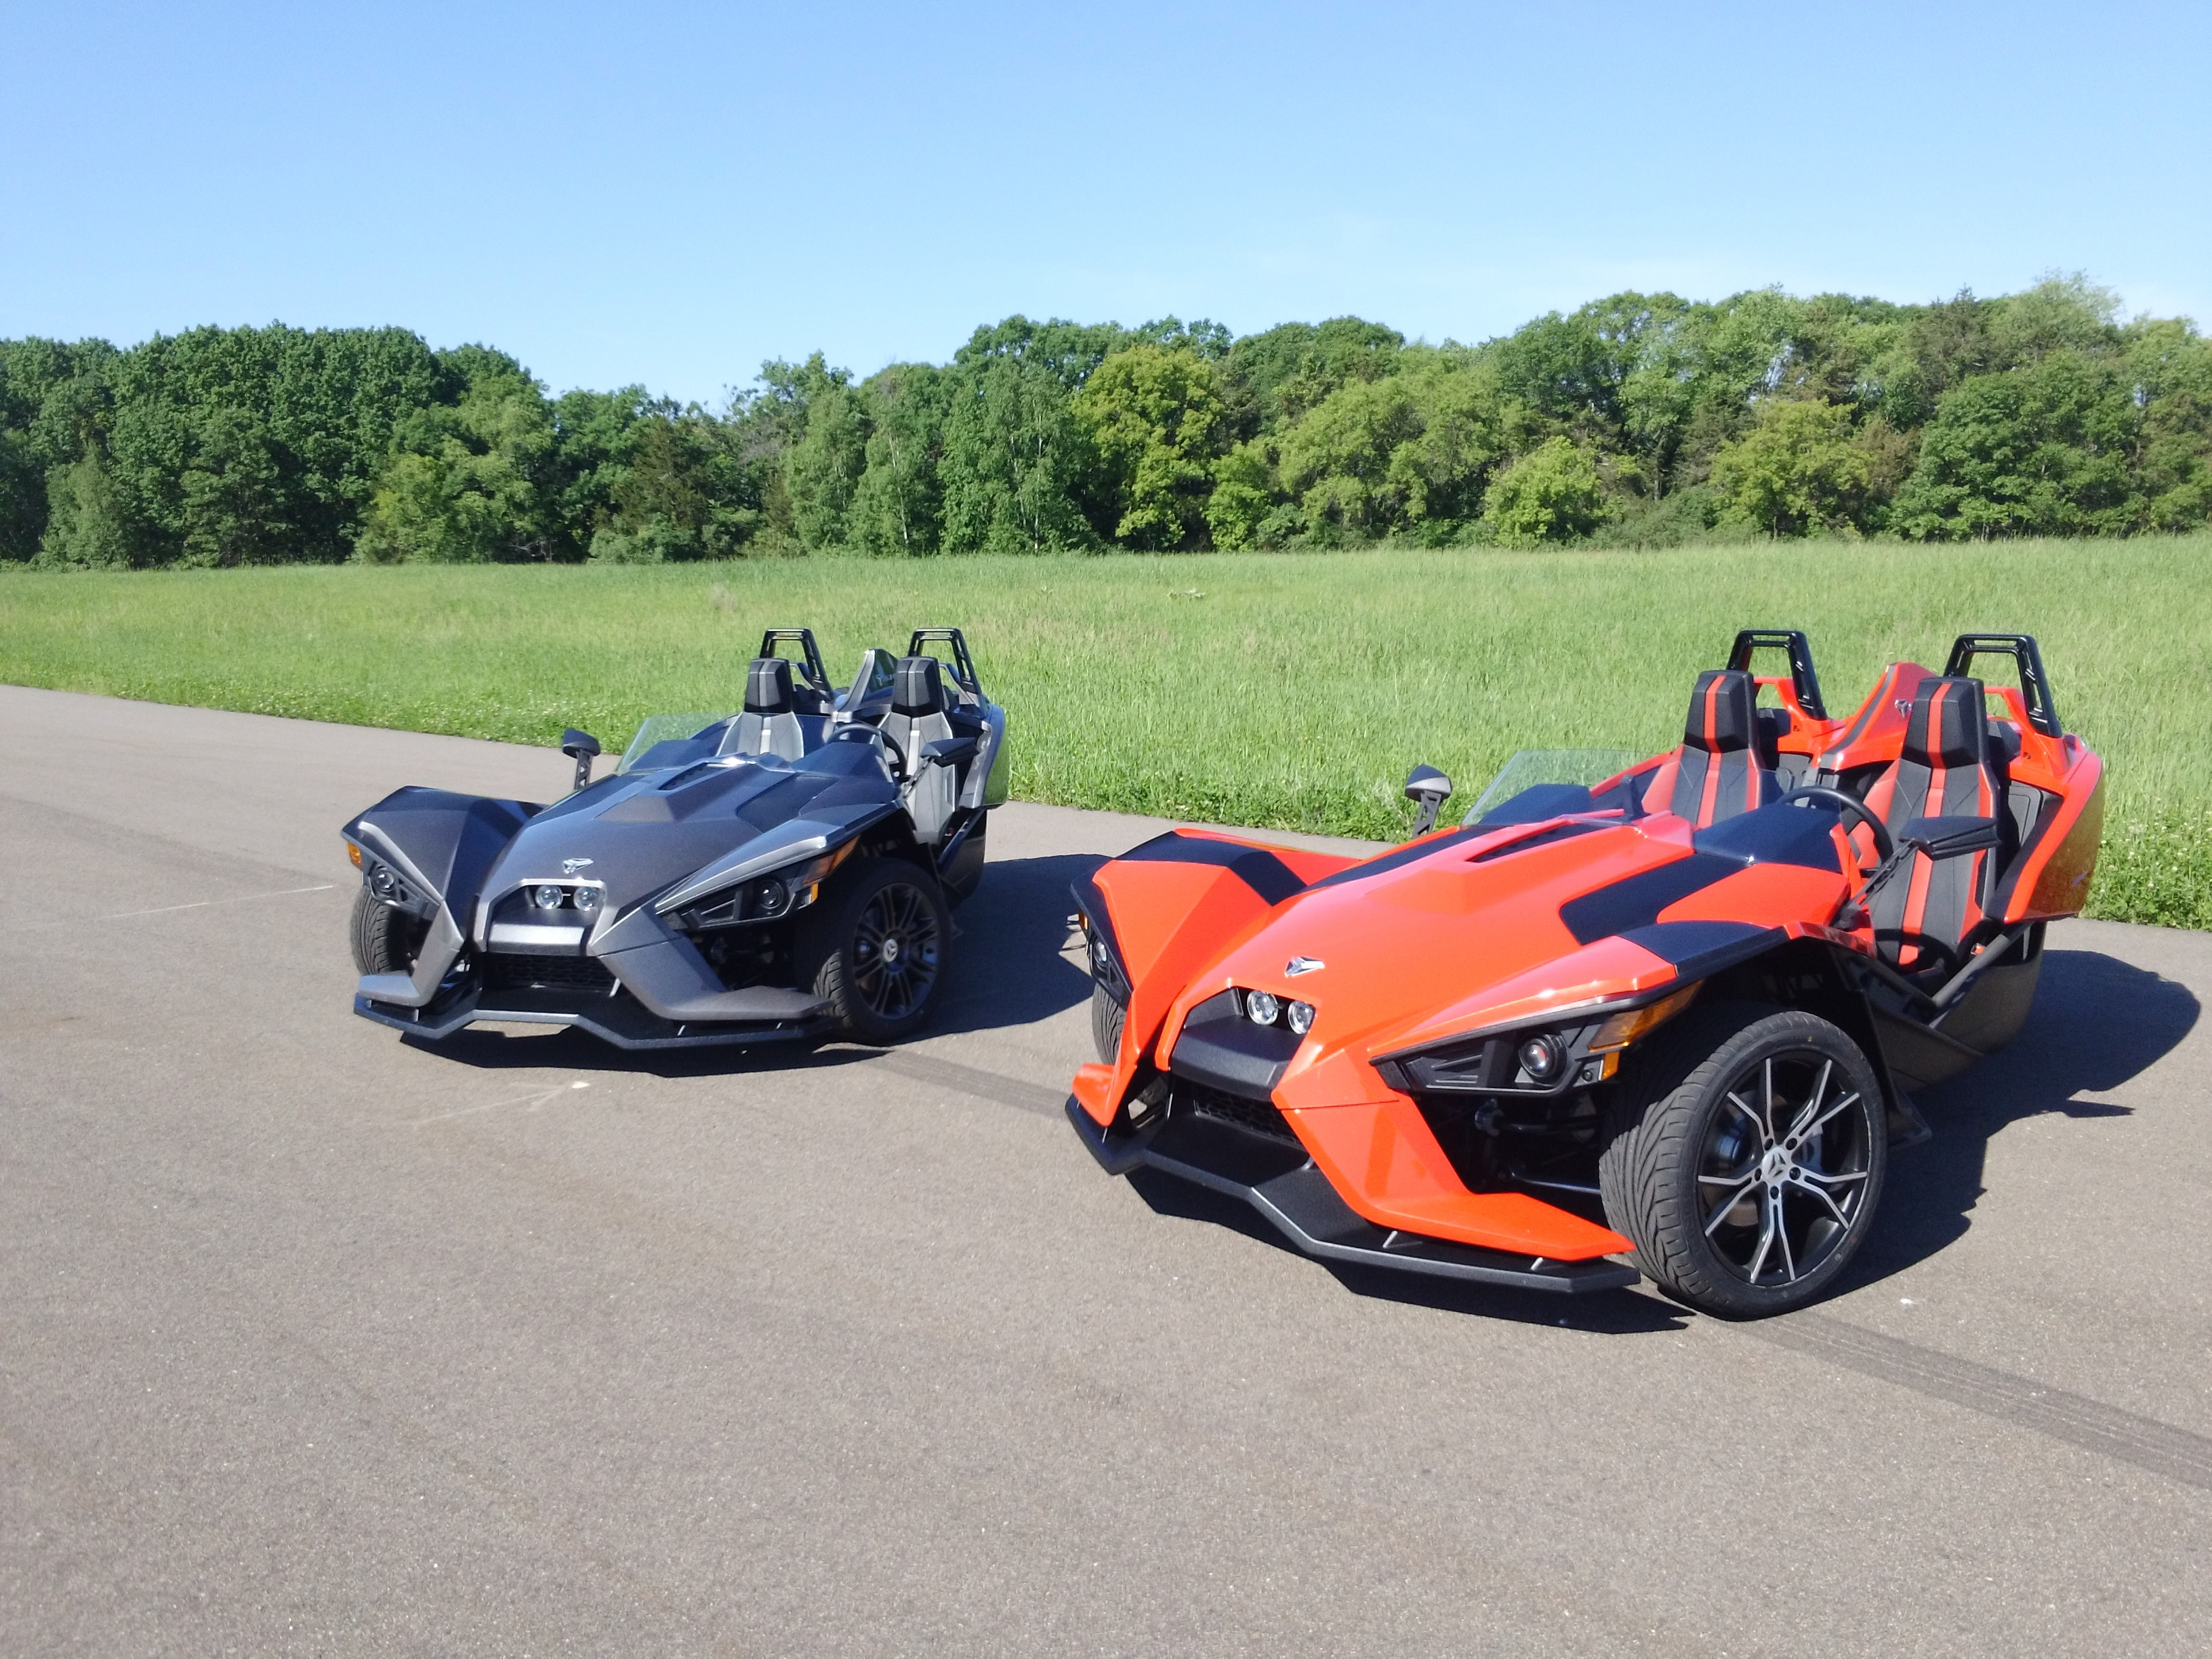 90c3730acc9 Polaris Debuts 2015 ORV and Motorcycle Product Lines